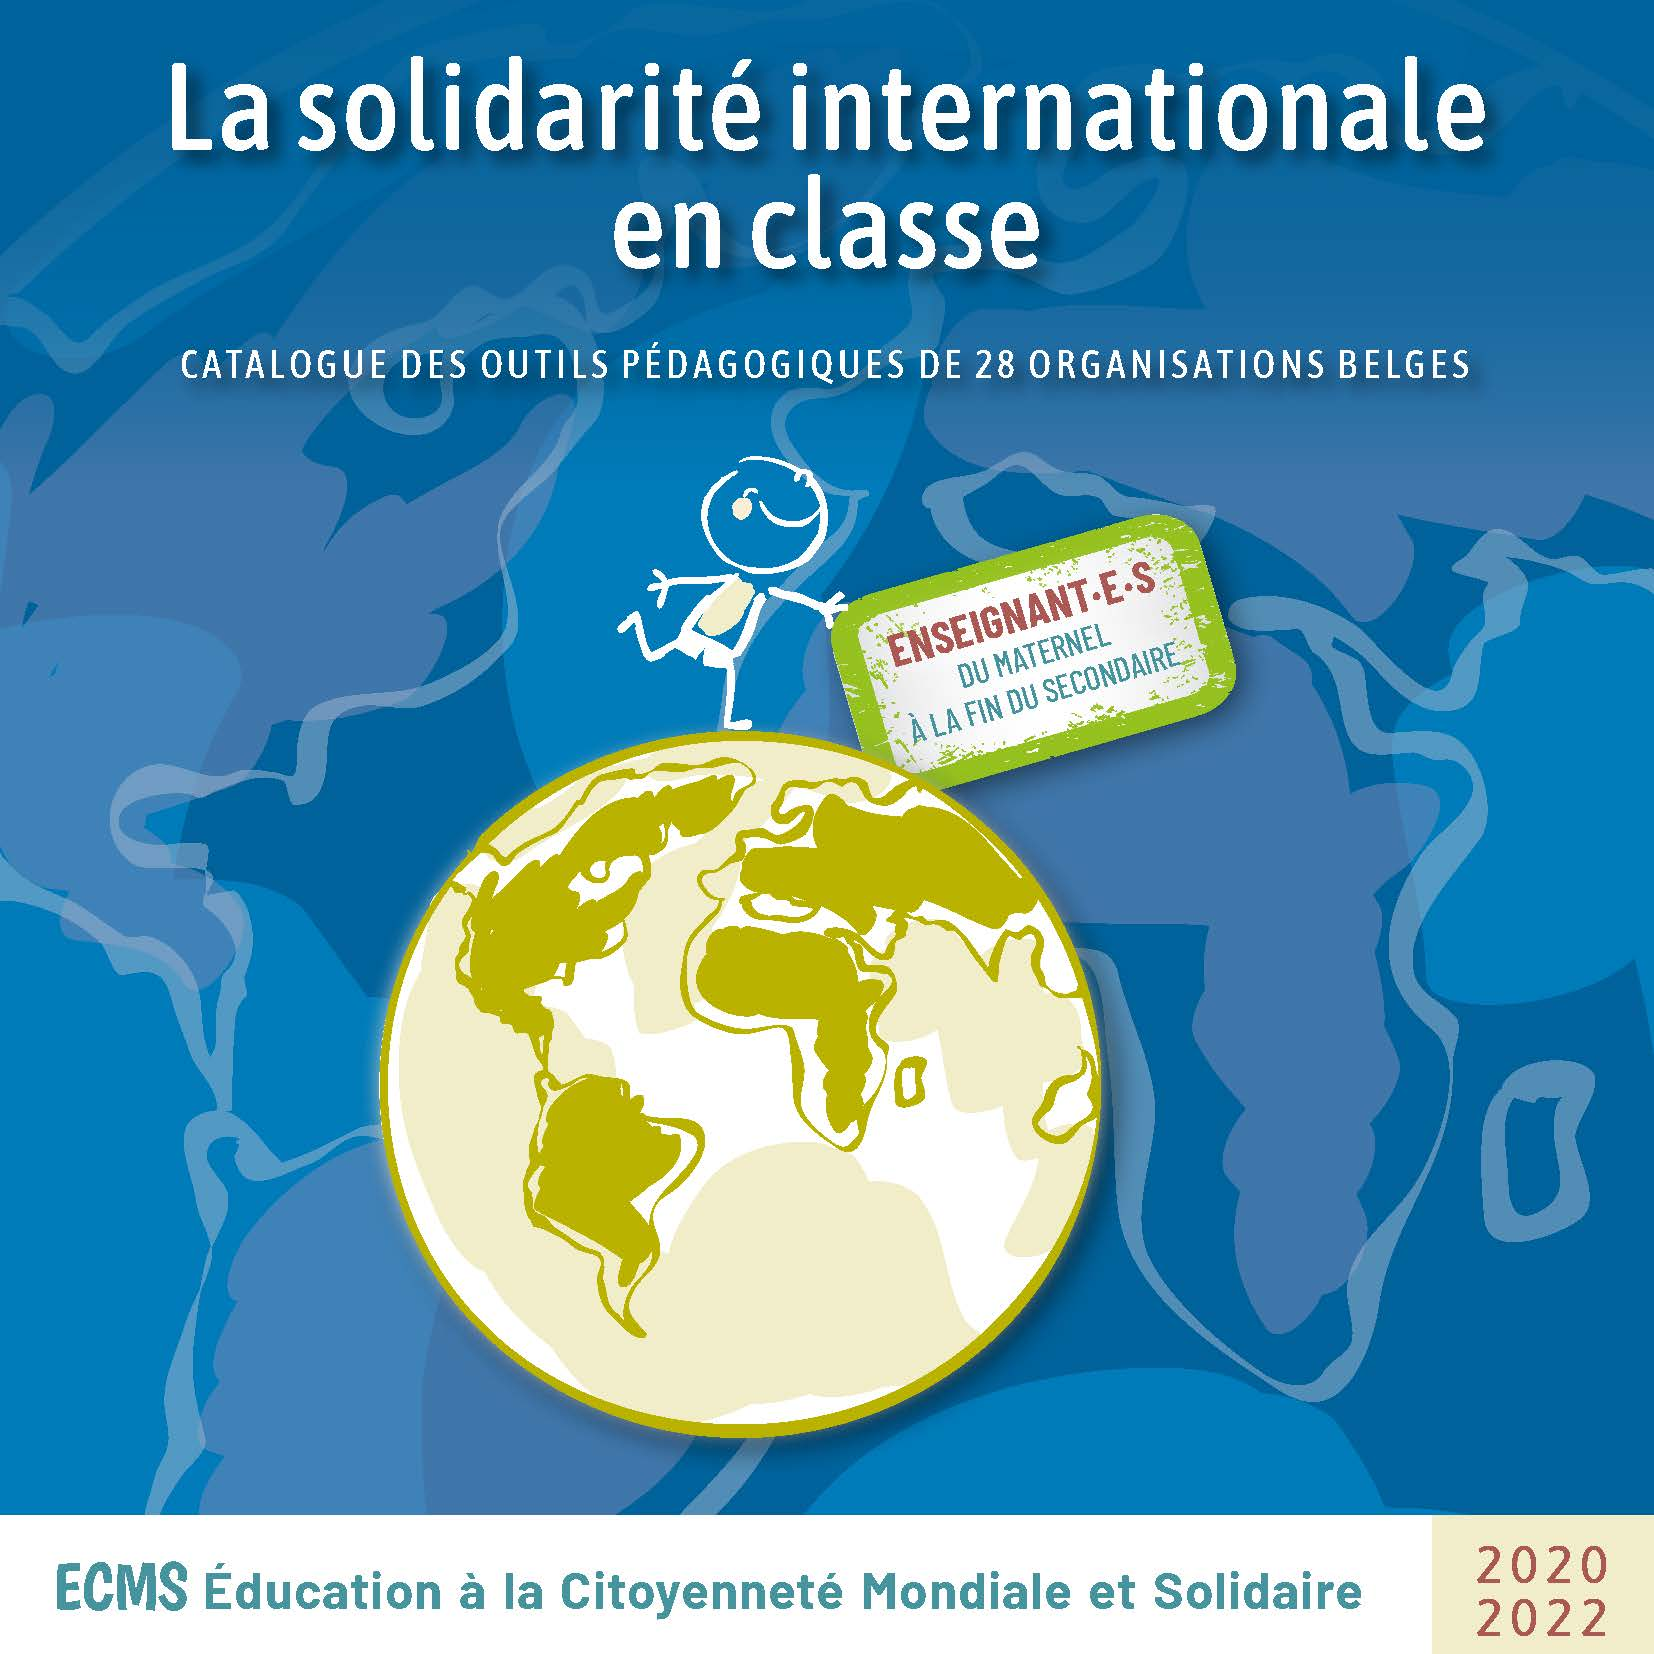 catalogue solidarité internationale en classe